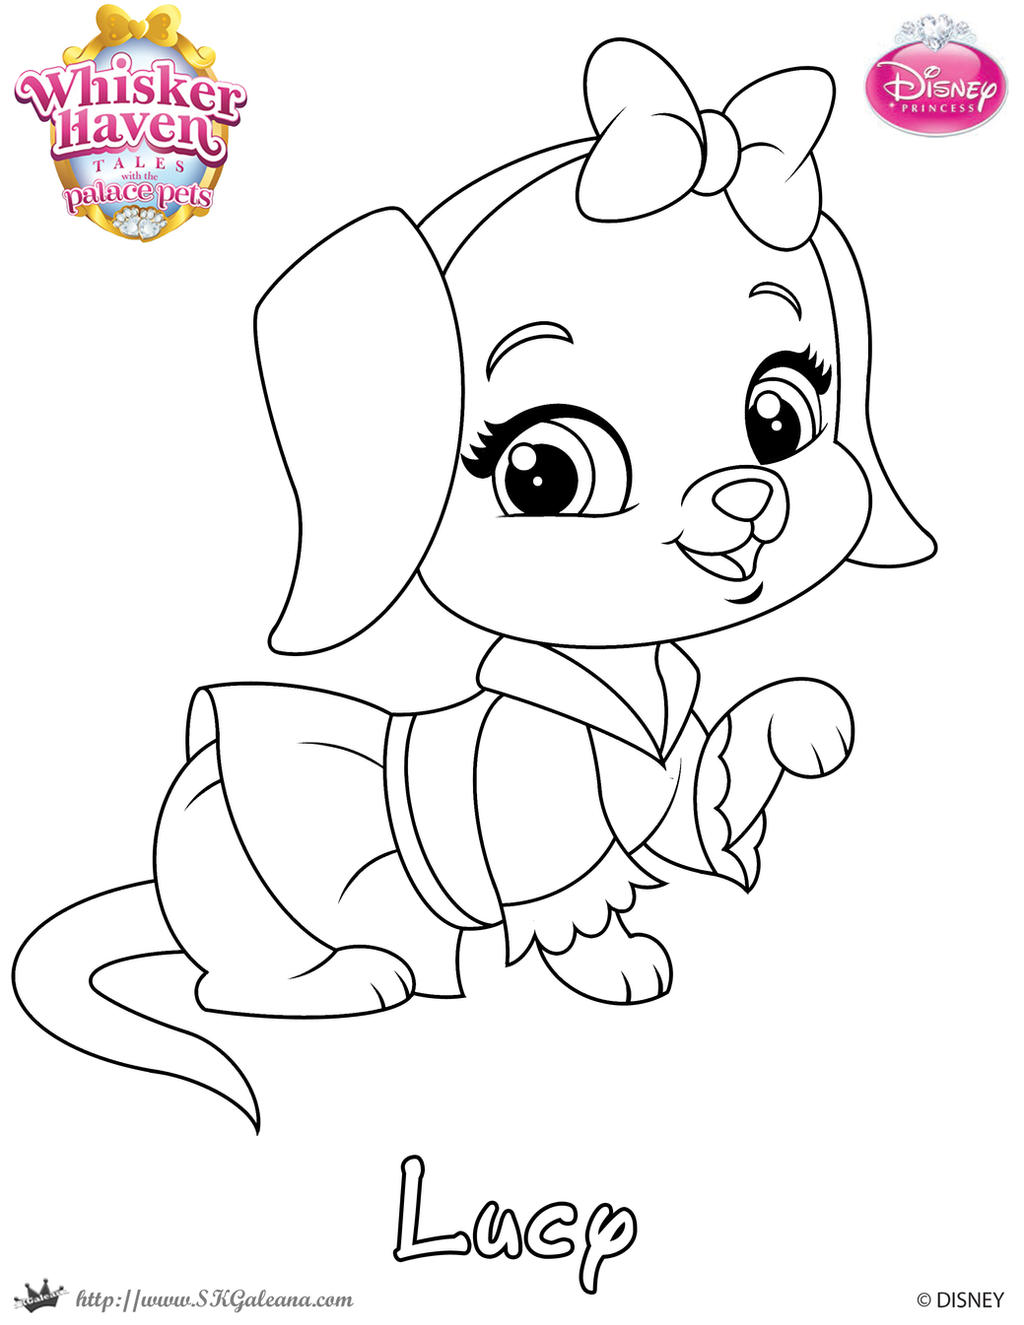 Disney princess palace pets coloring pages - Skgaleana 2 0 Lucy Coloing Page From Whisker Haven By Skgaleana